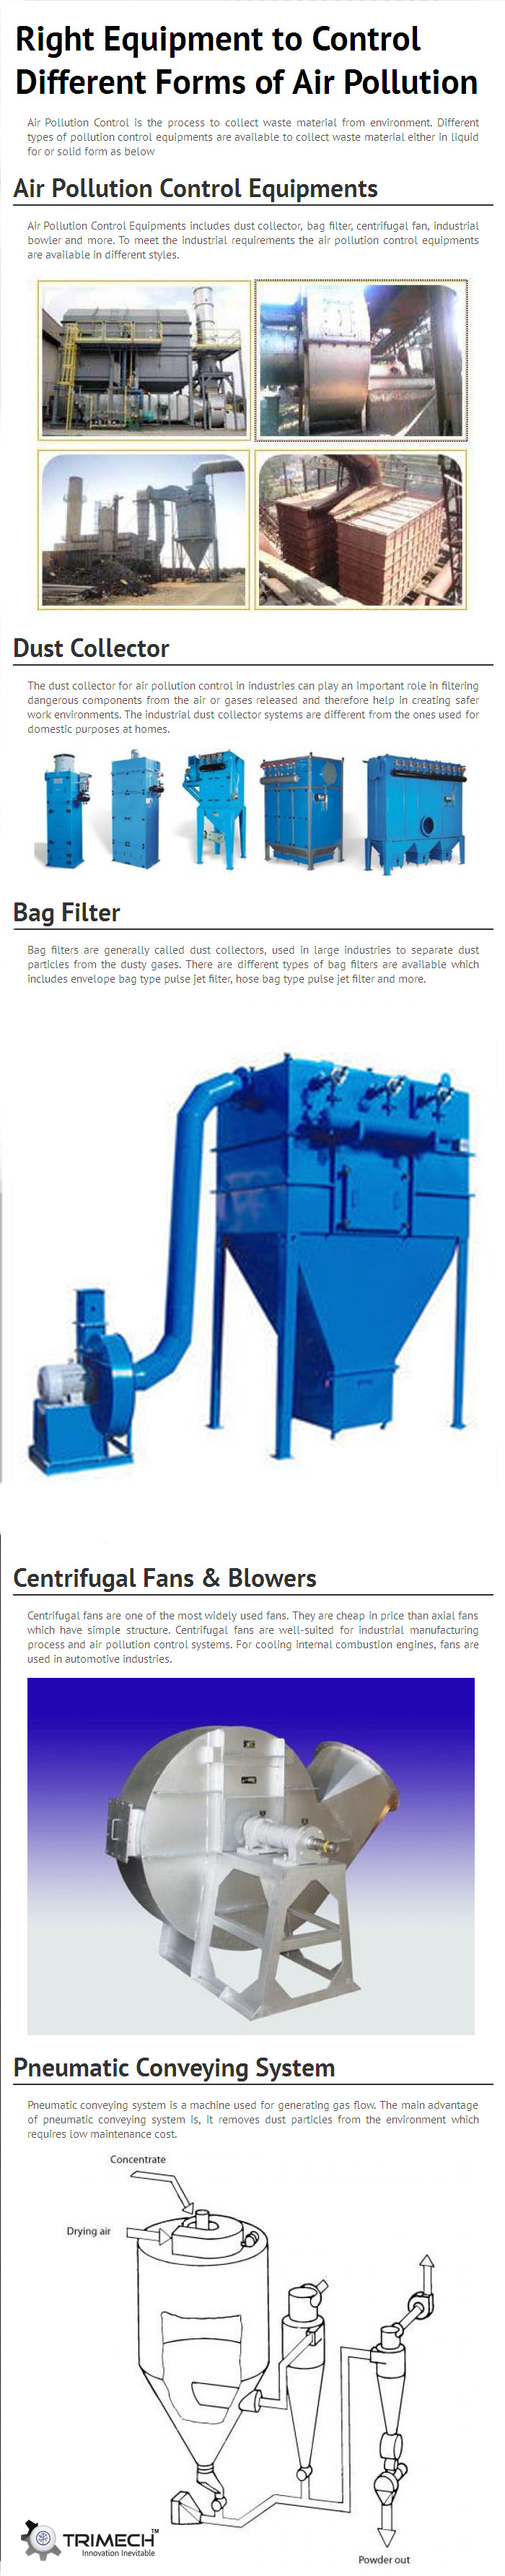 Air Pollution Control Equipments Right Equipments to